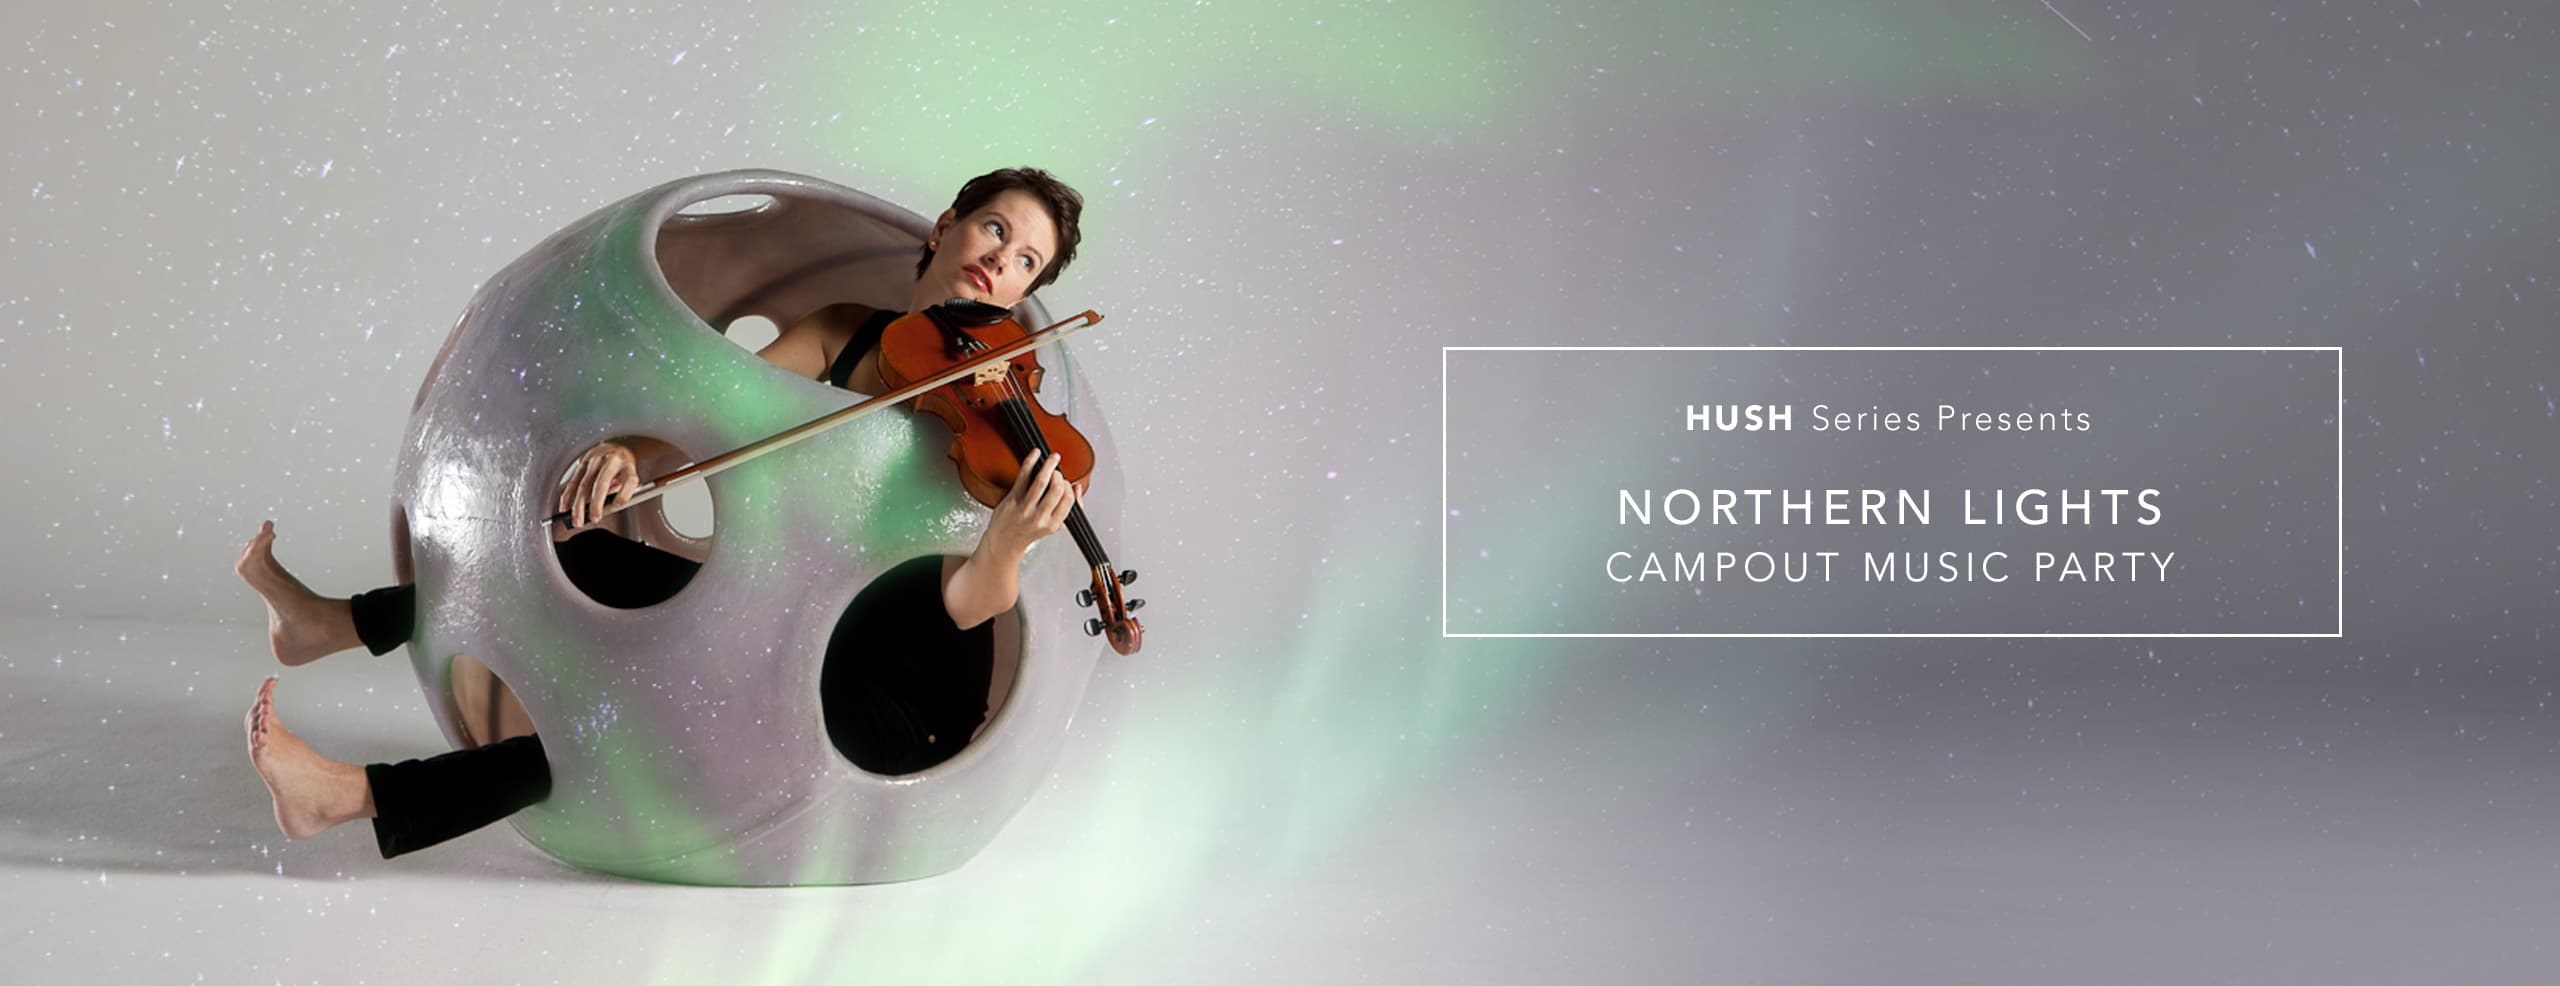 Center for New Music | HUSH Series — Northern Lights Campout Music Party